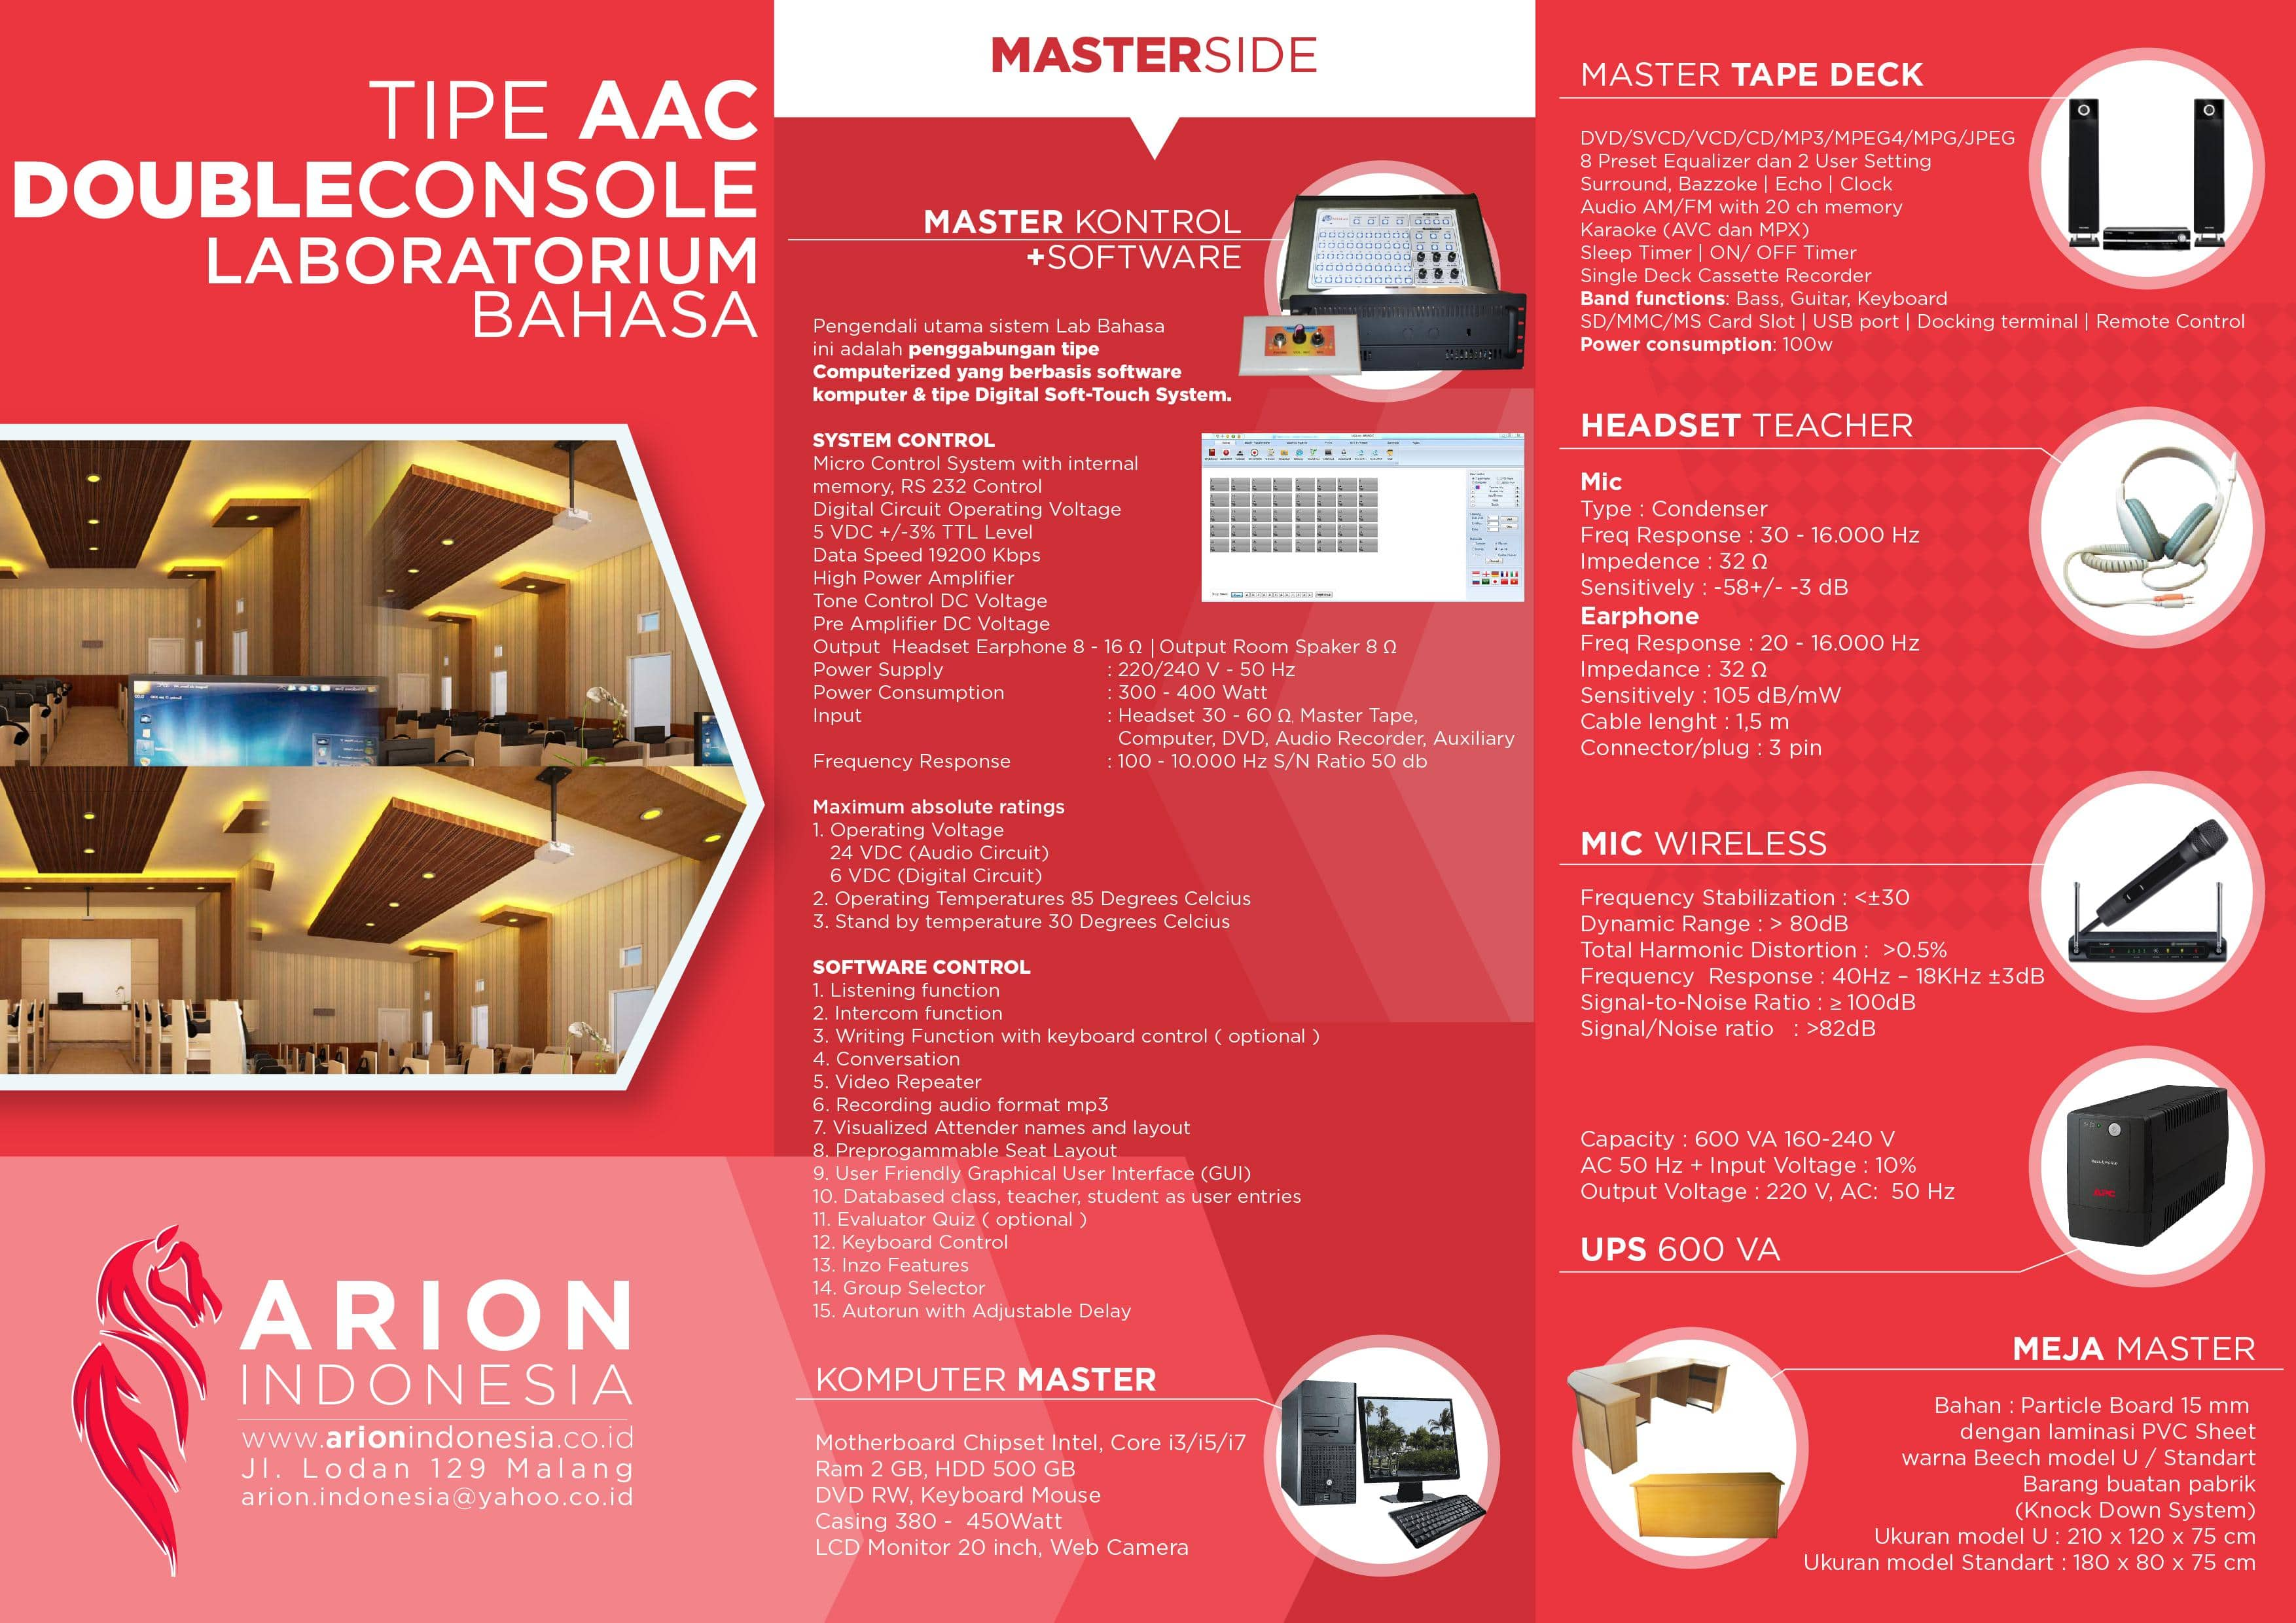 double-console-aac-01-min